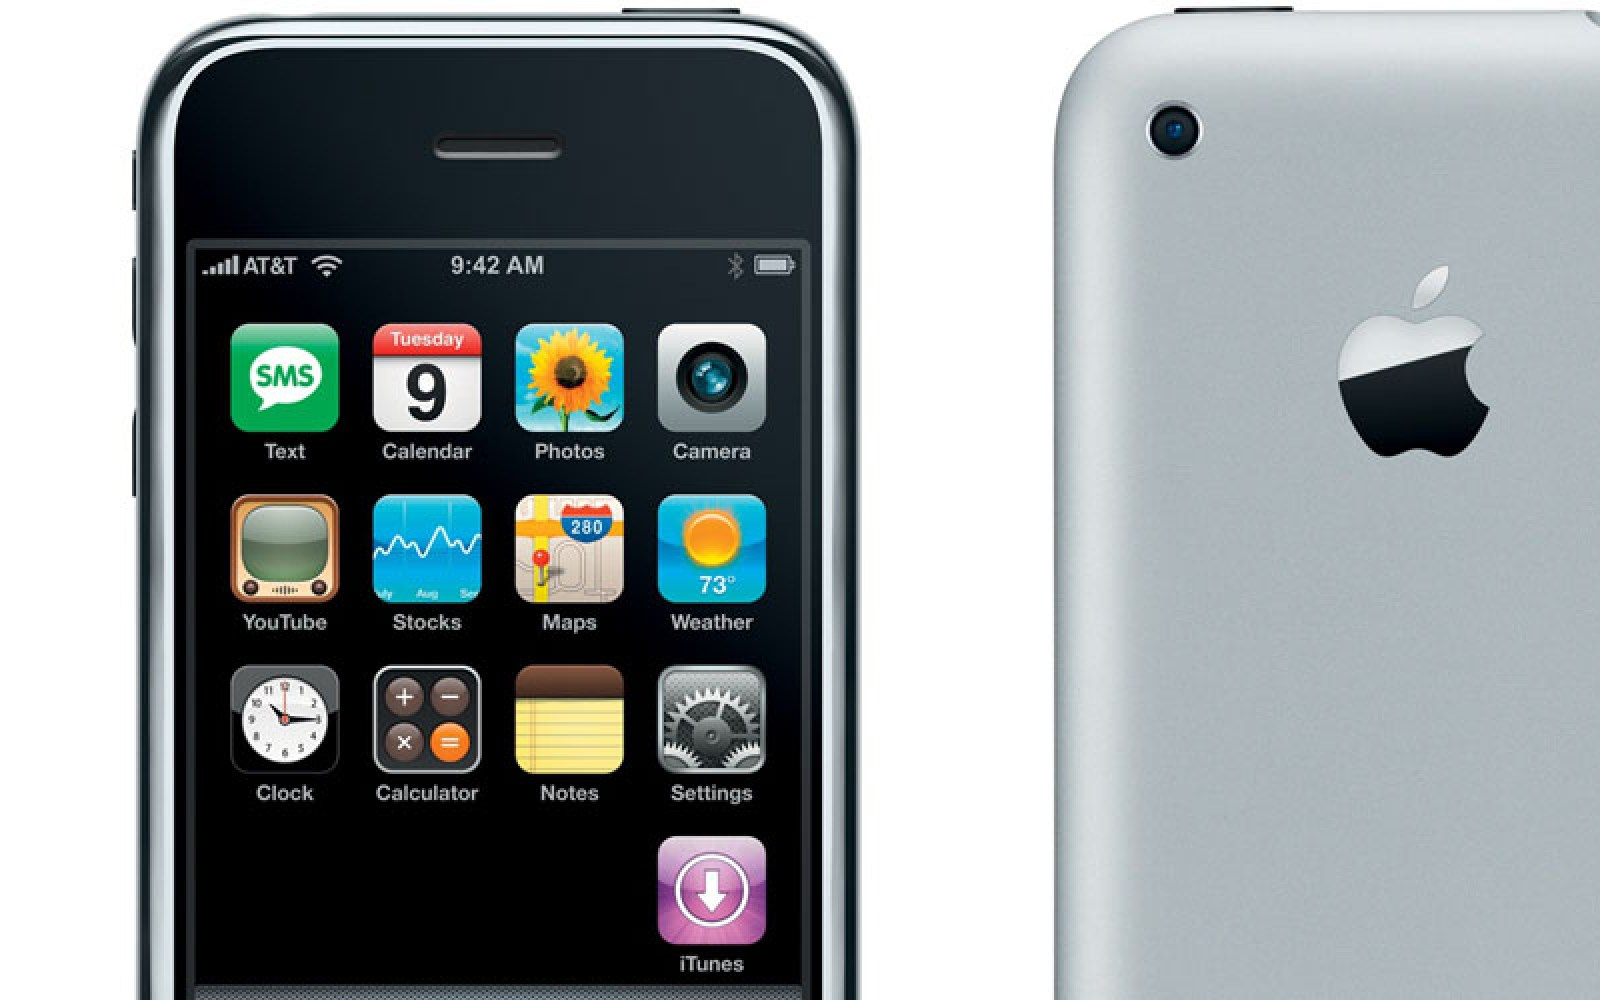 Apple didn't just sell a billion iPhones, it created the most popular product ever